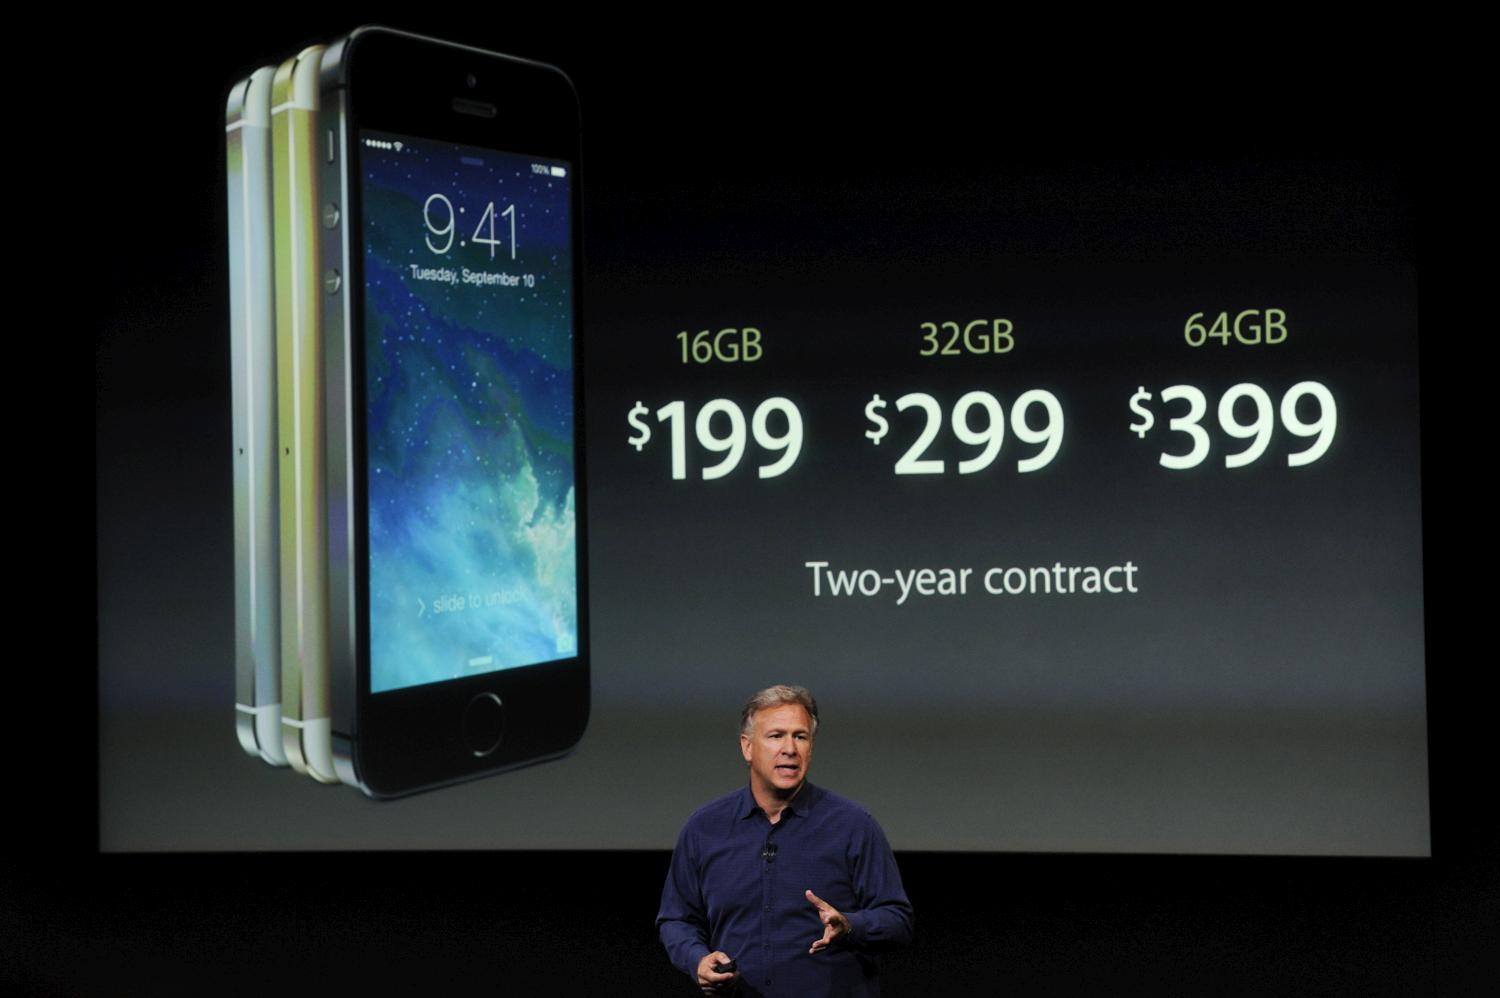 Apple SVP Phil Schiller talks about the iPhone 5s at its September 2013 unveiling.